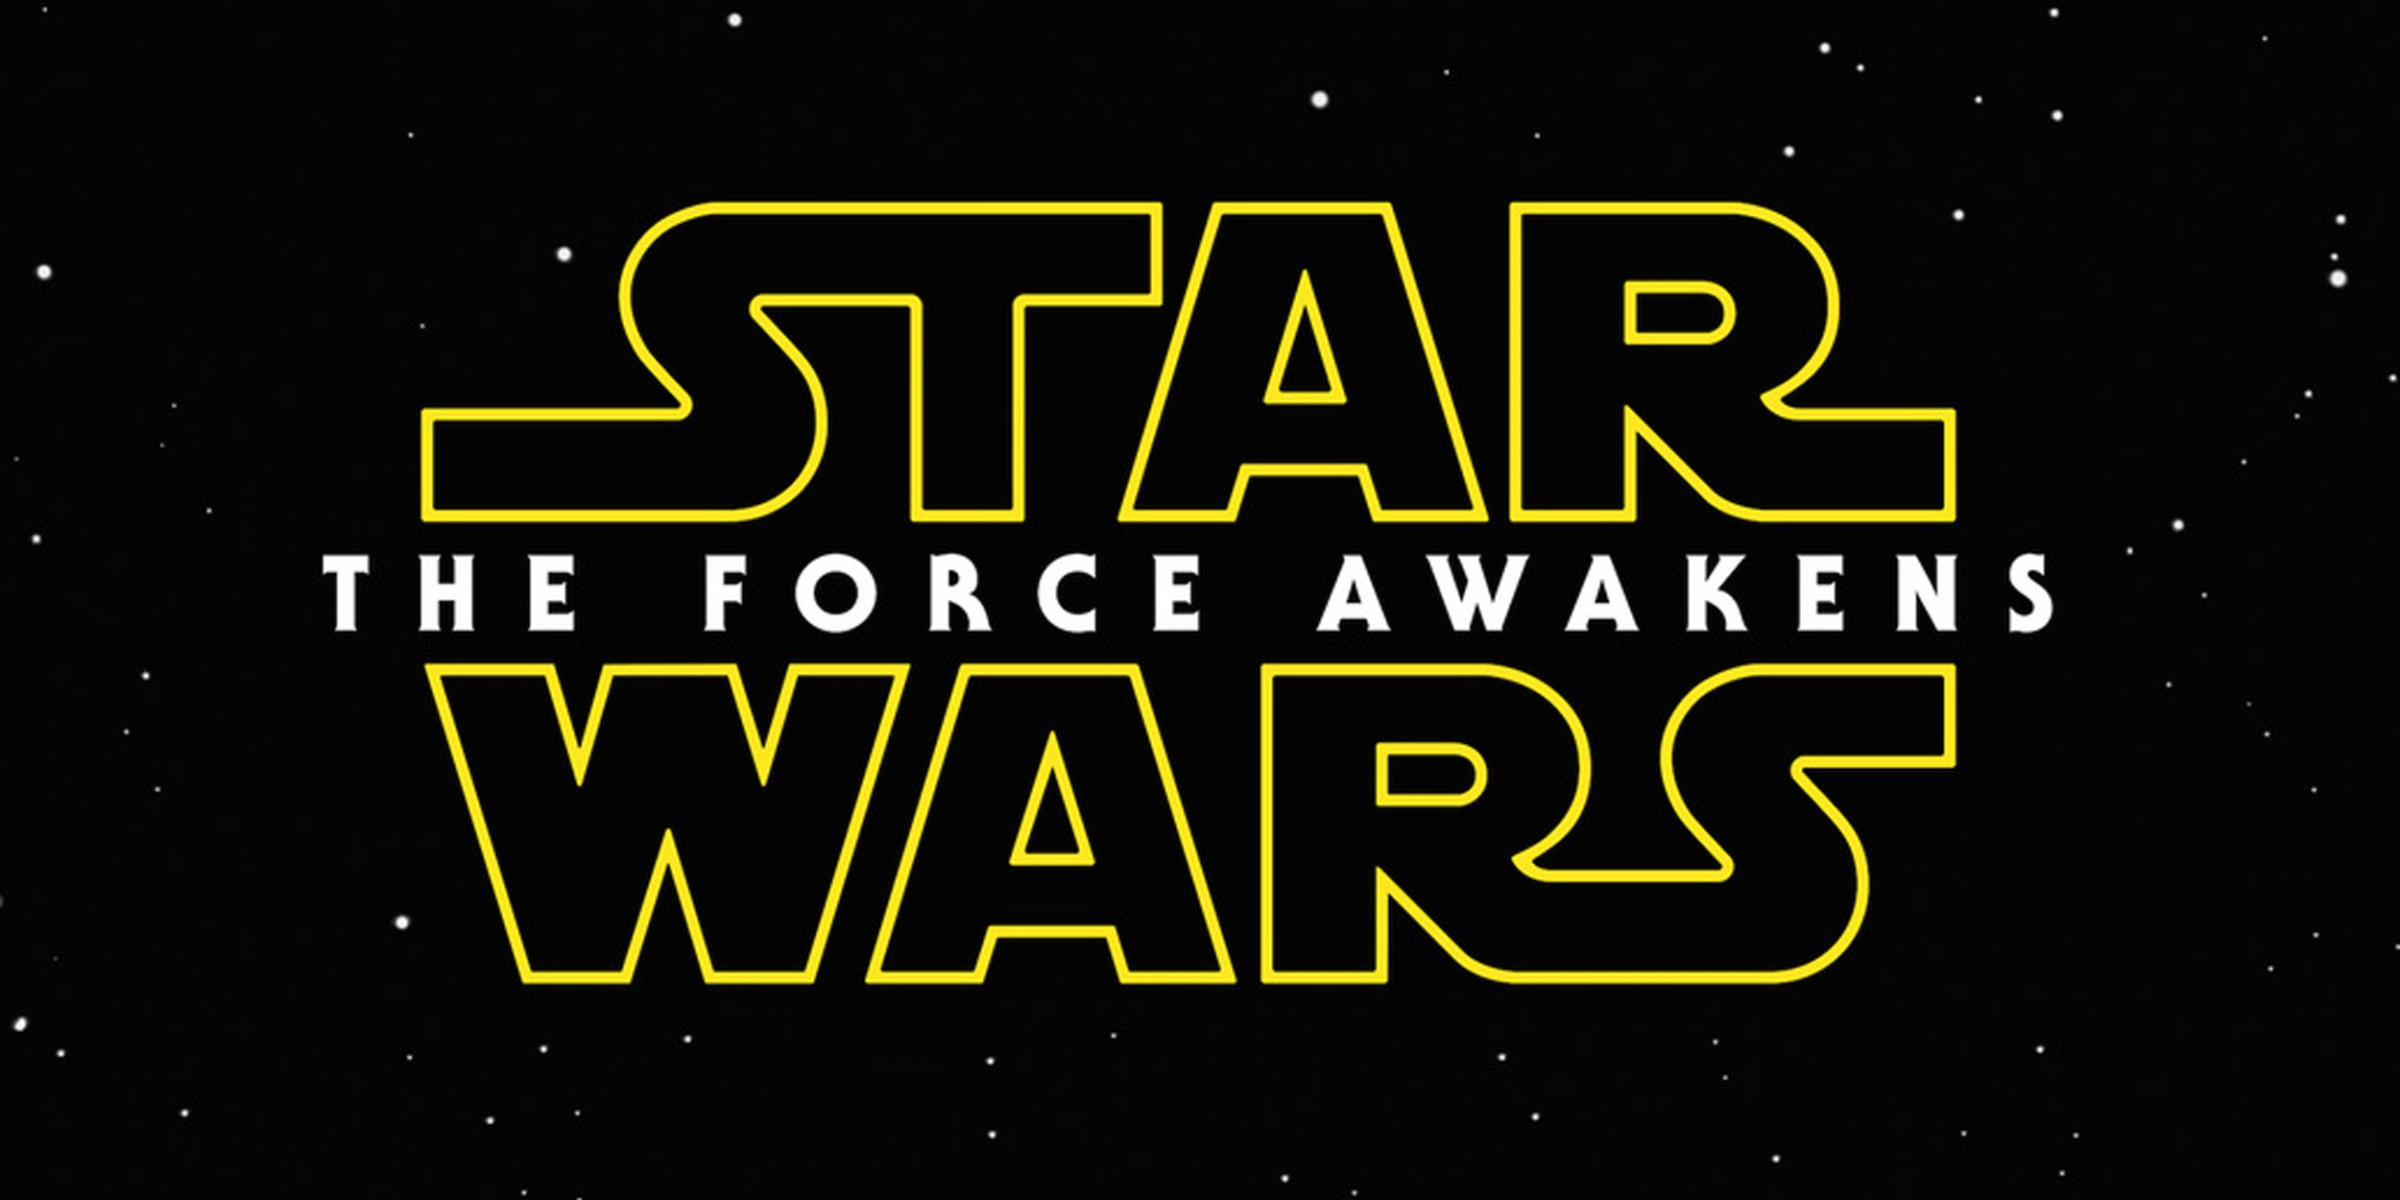 Episode VII The Force Awakens